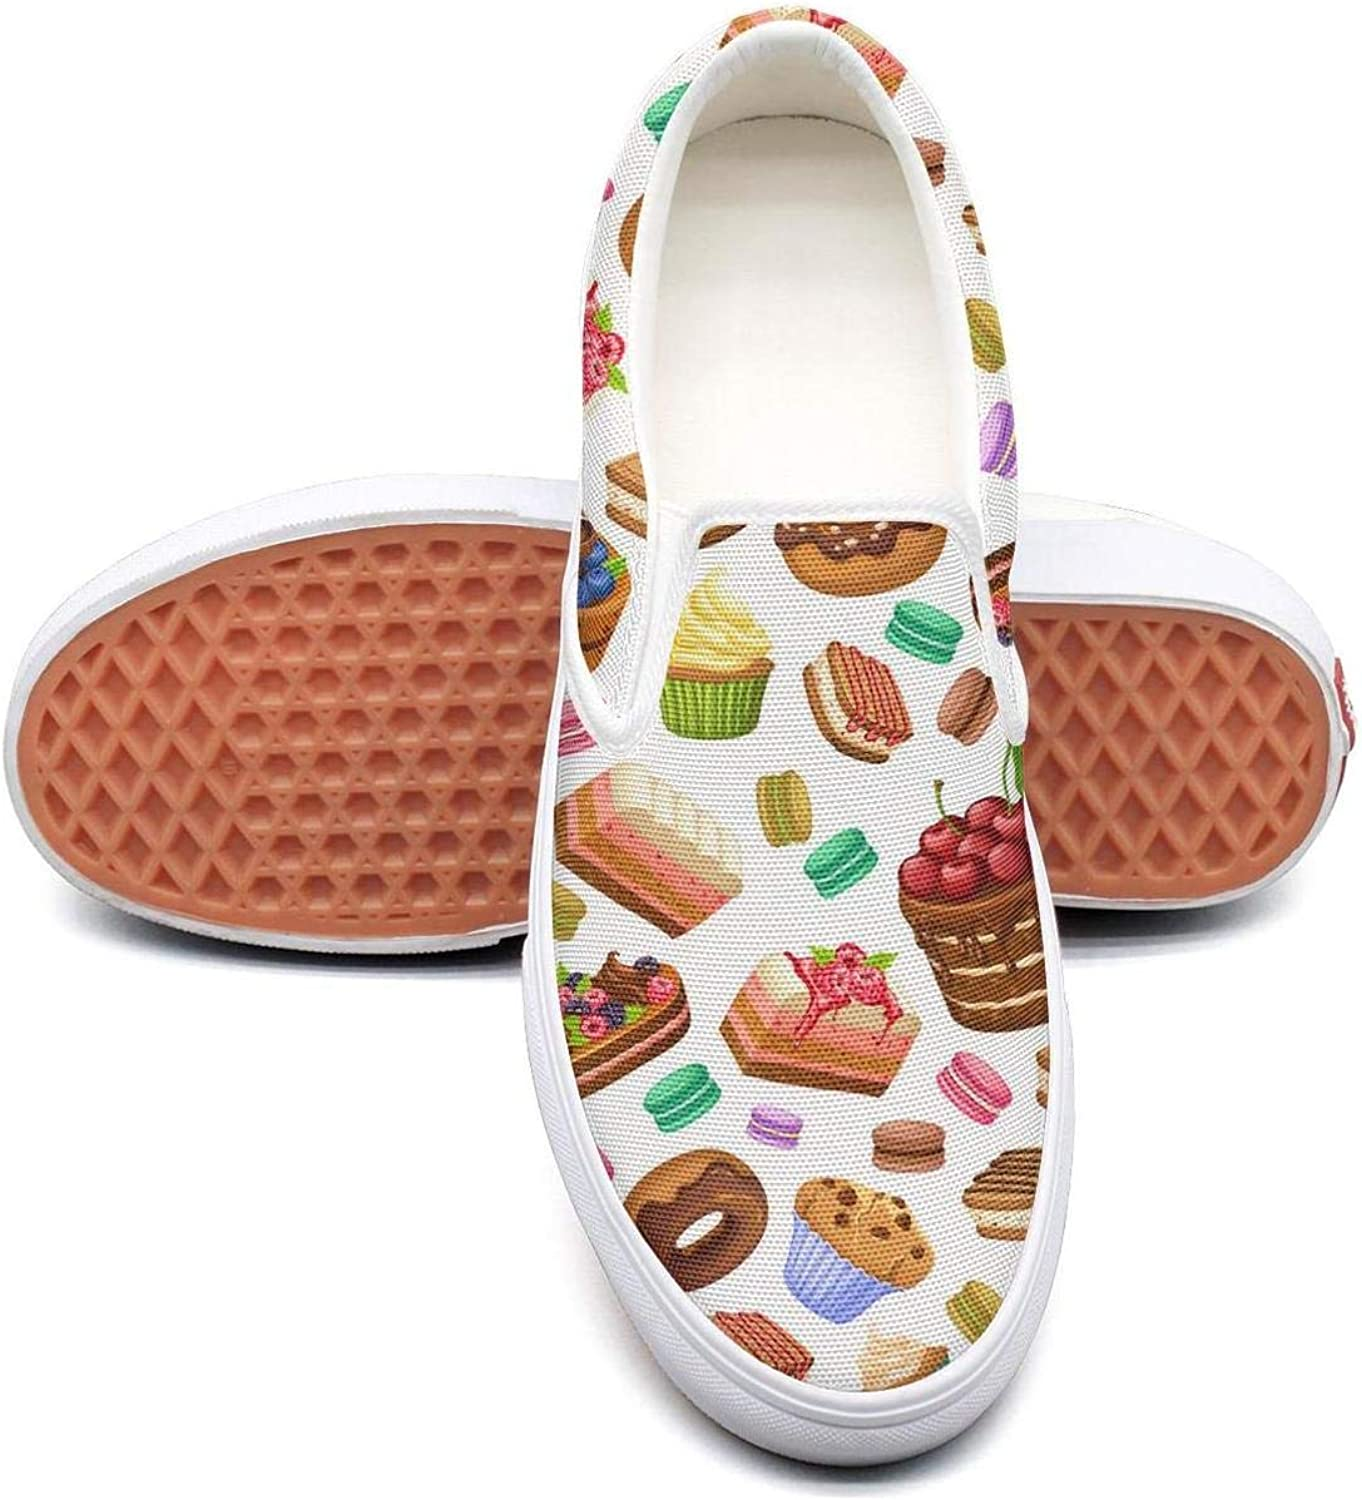 Lalige Cartoon colorful Desserts Brown Donut Cake Women Comfortable Canvas Slip-ONS Walking shoes